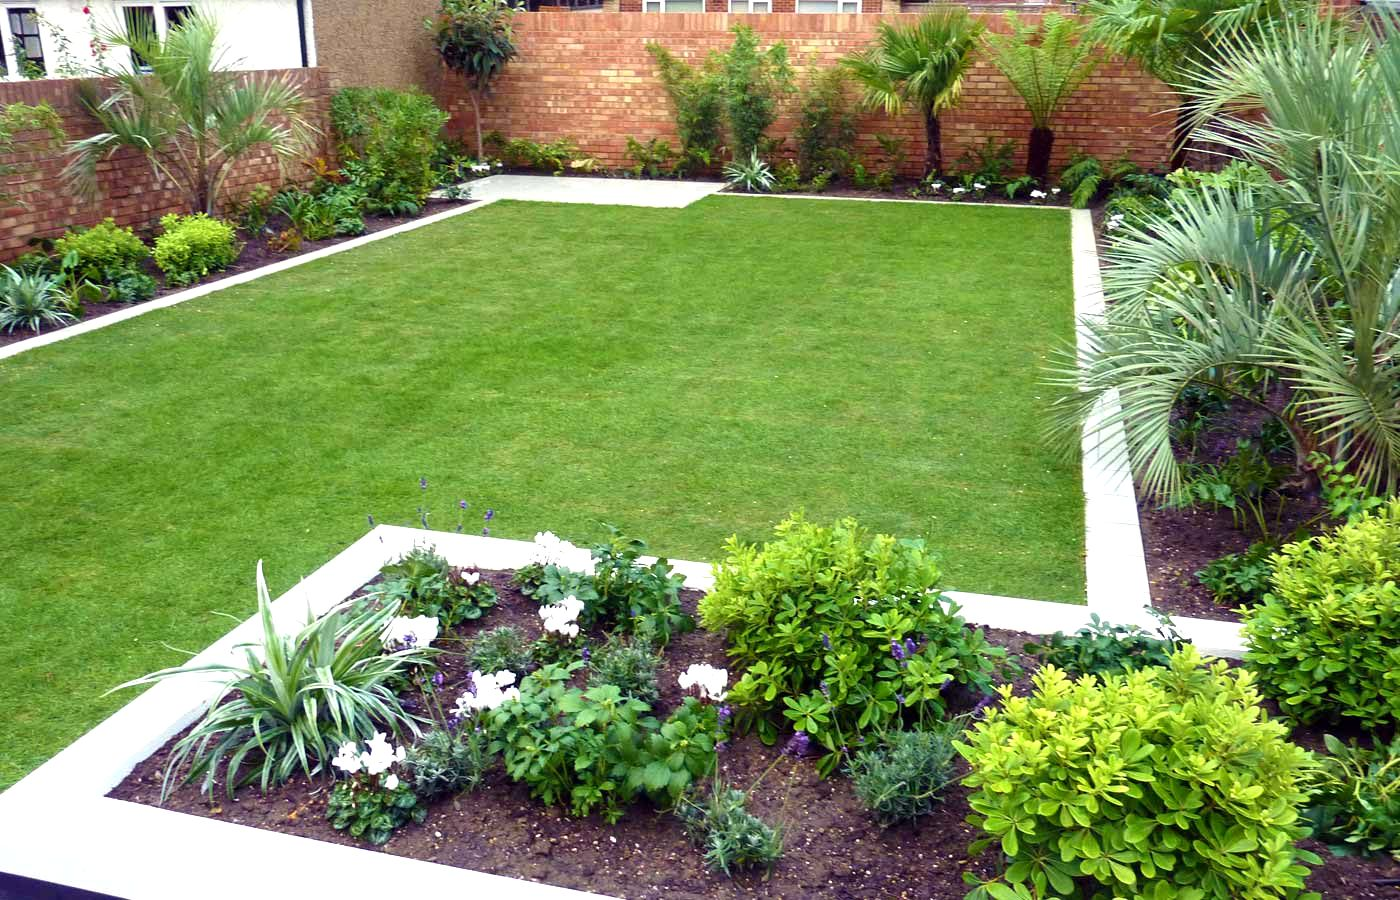 The Small Garden Ideas With Green Grass And Plants Near Exposed Brick Wall  Fence